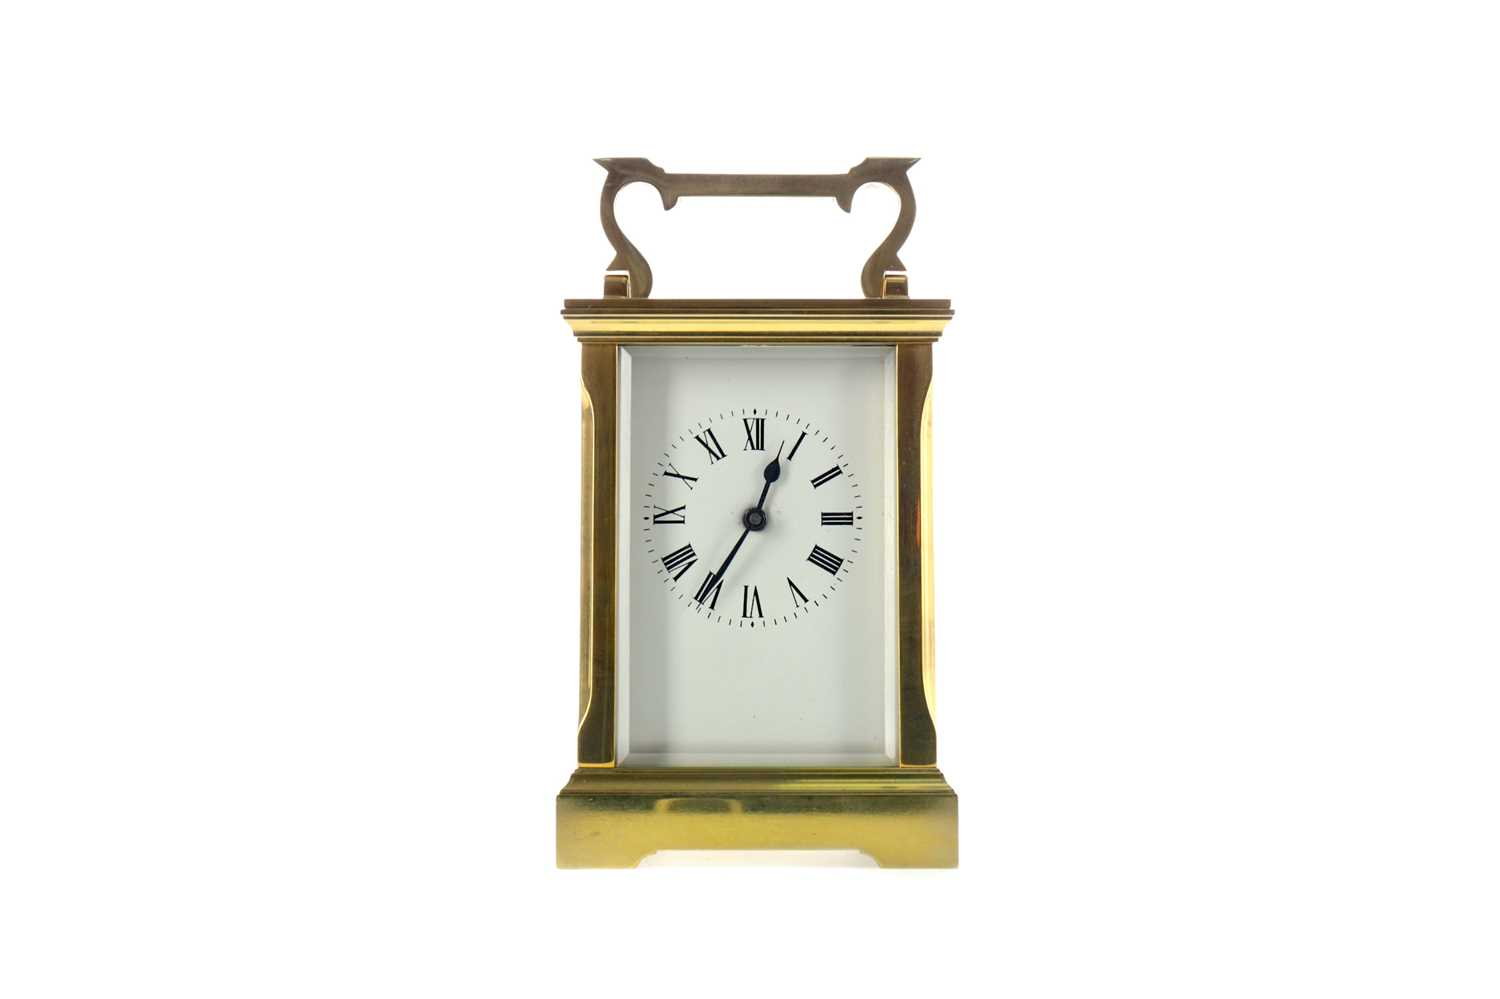 Lot 1739 - AN EARLY 20TH CENTURY CARRIAGE CLOCK